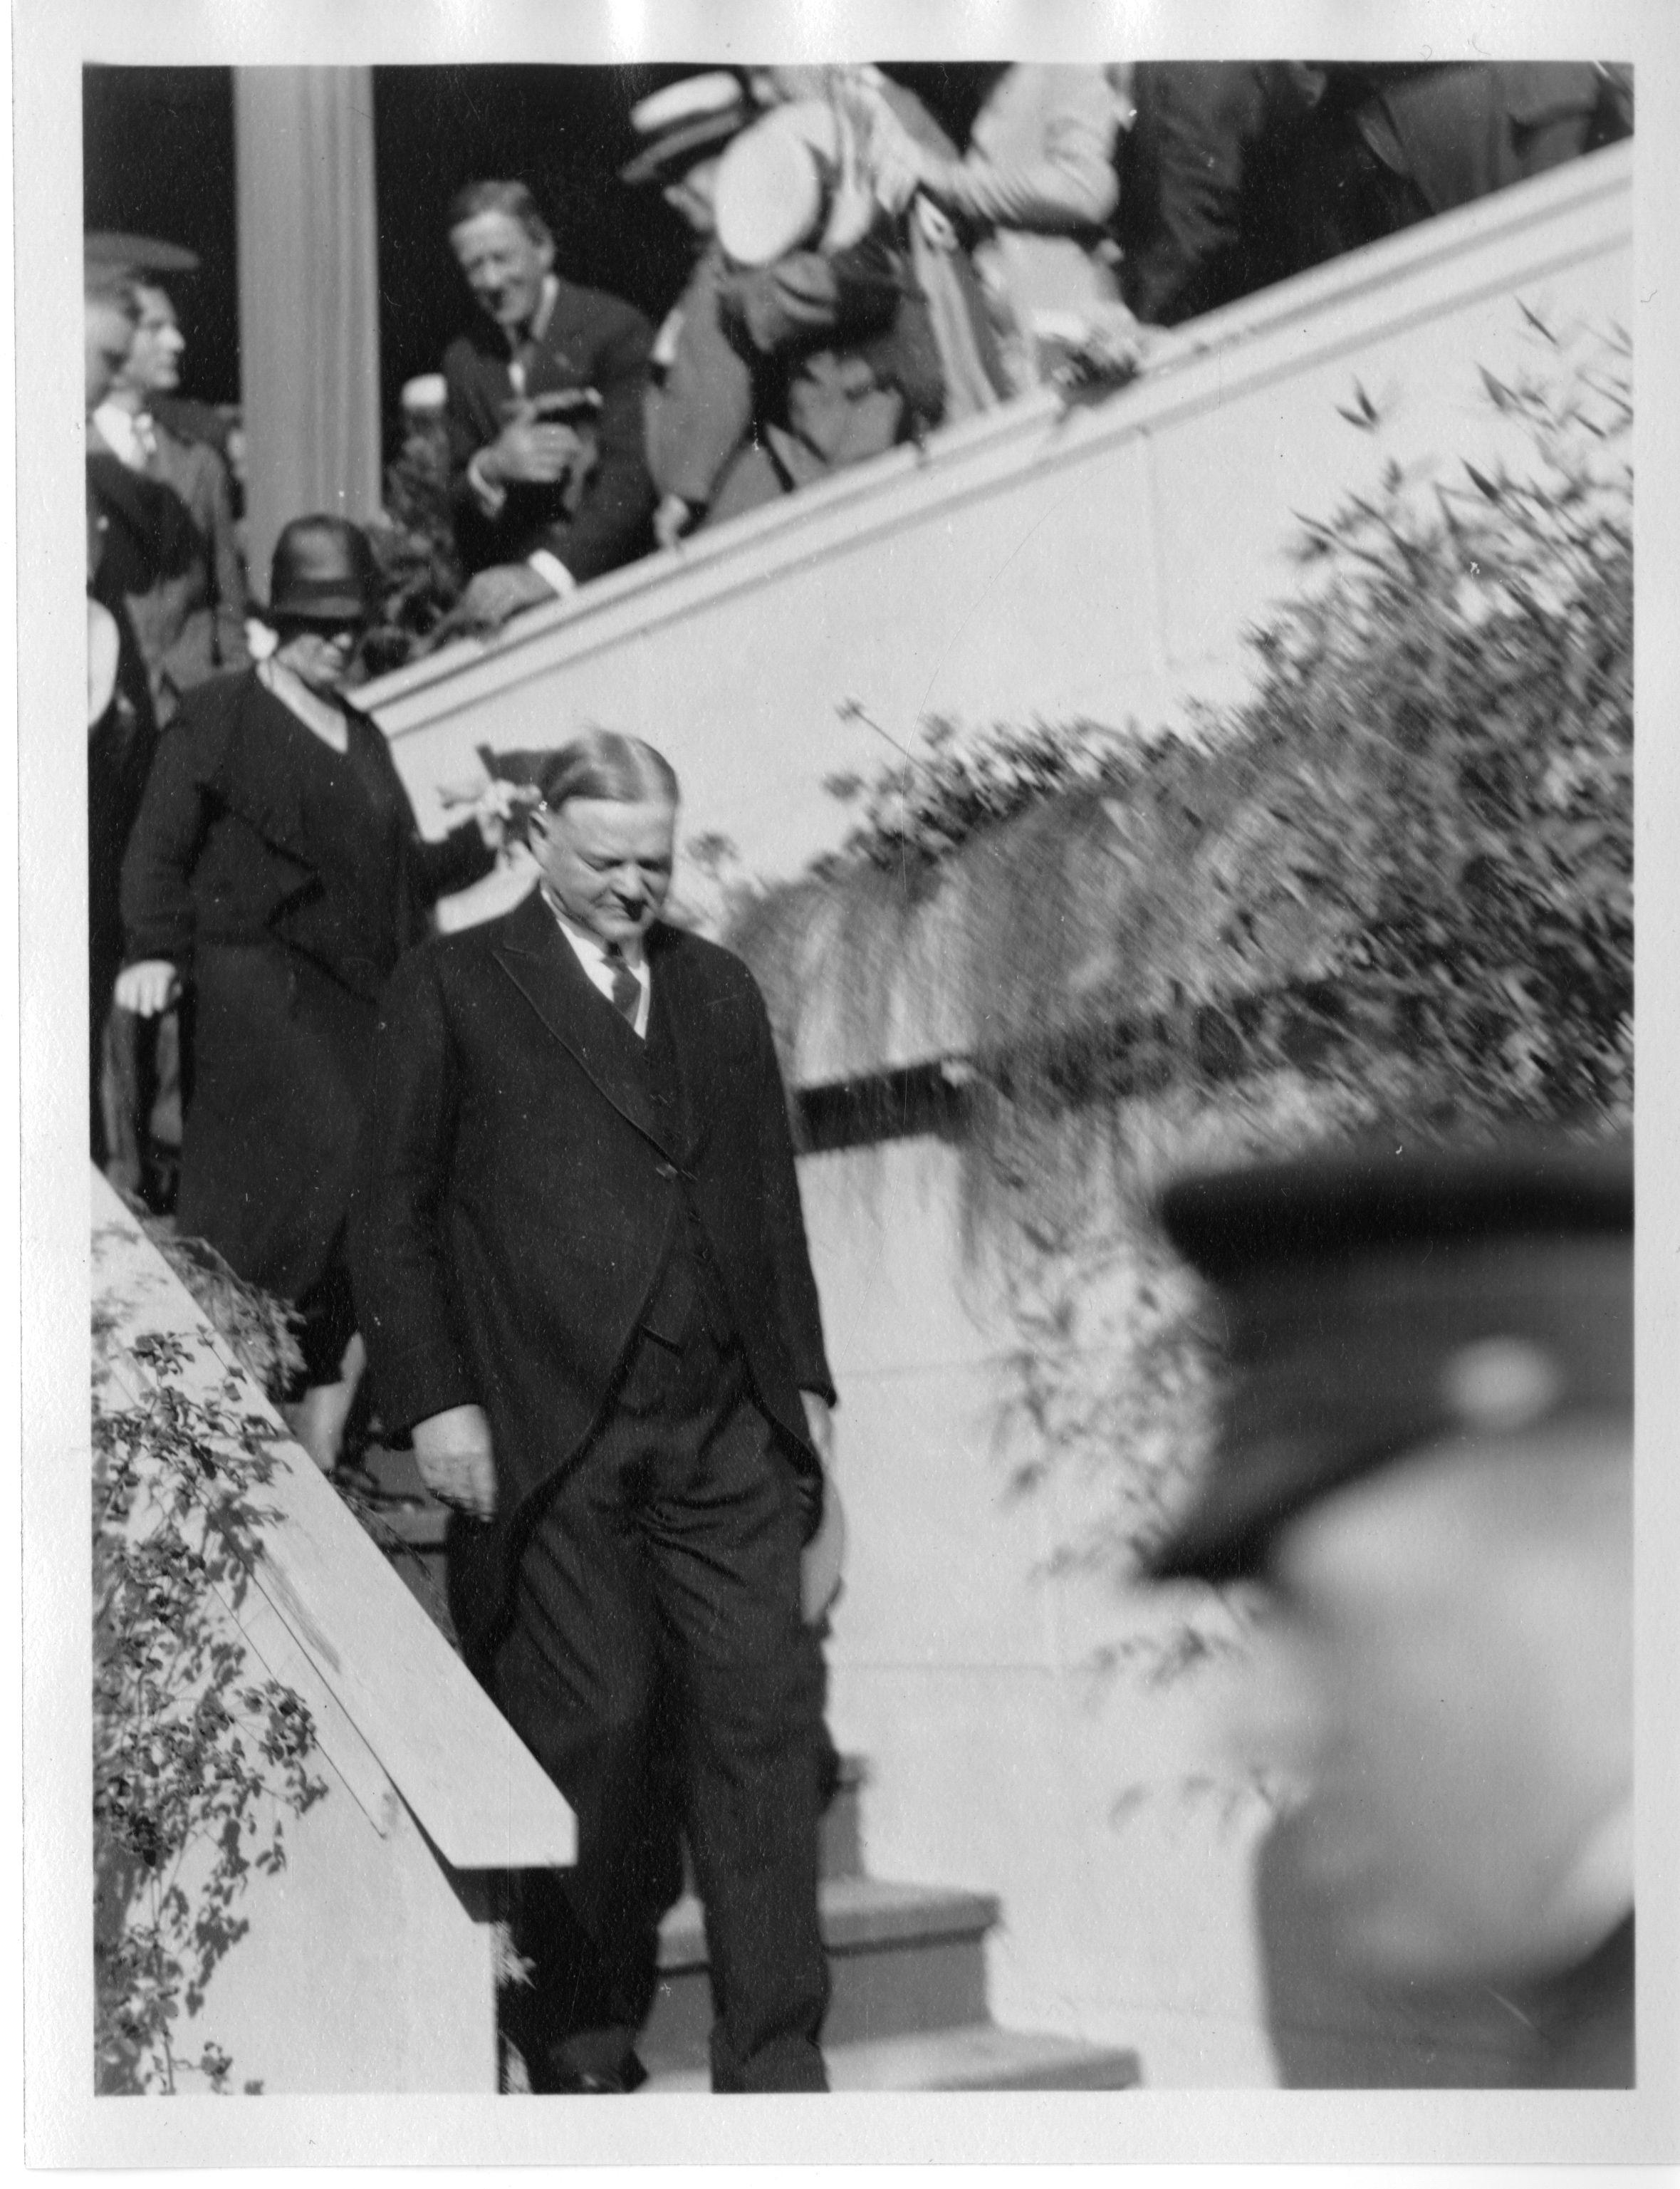 Hoover leaving the platform with his wife Lou Henry